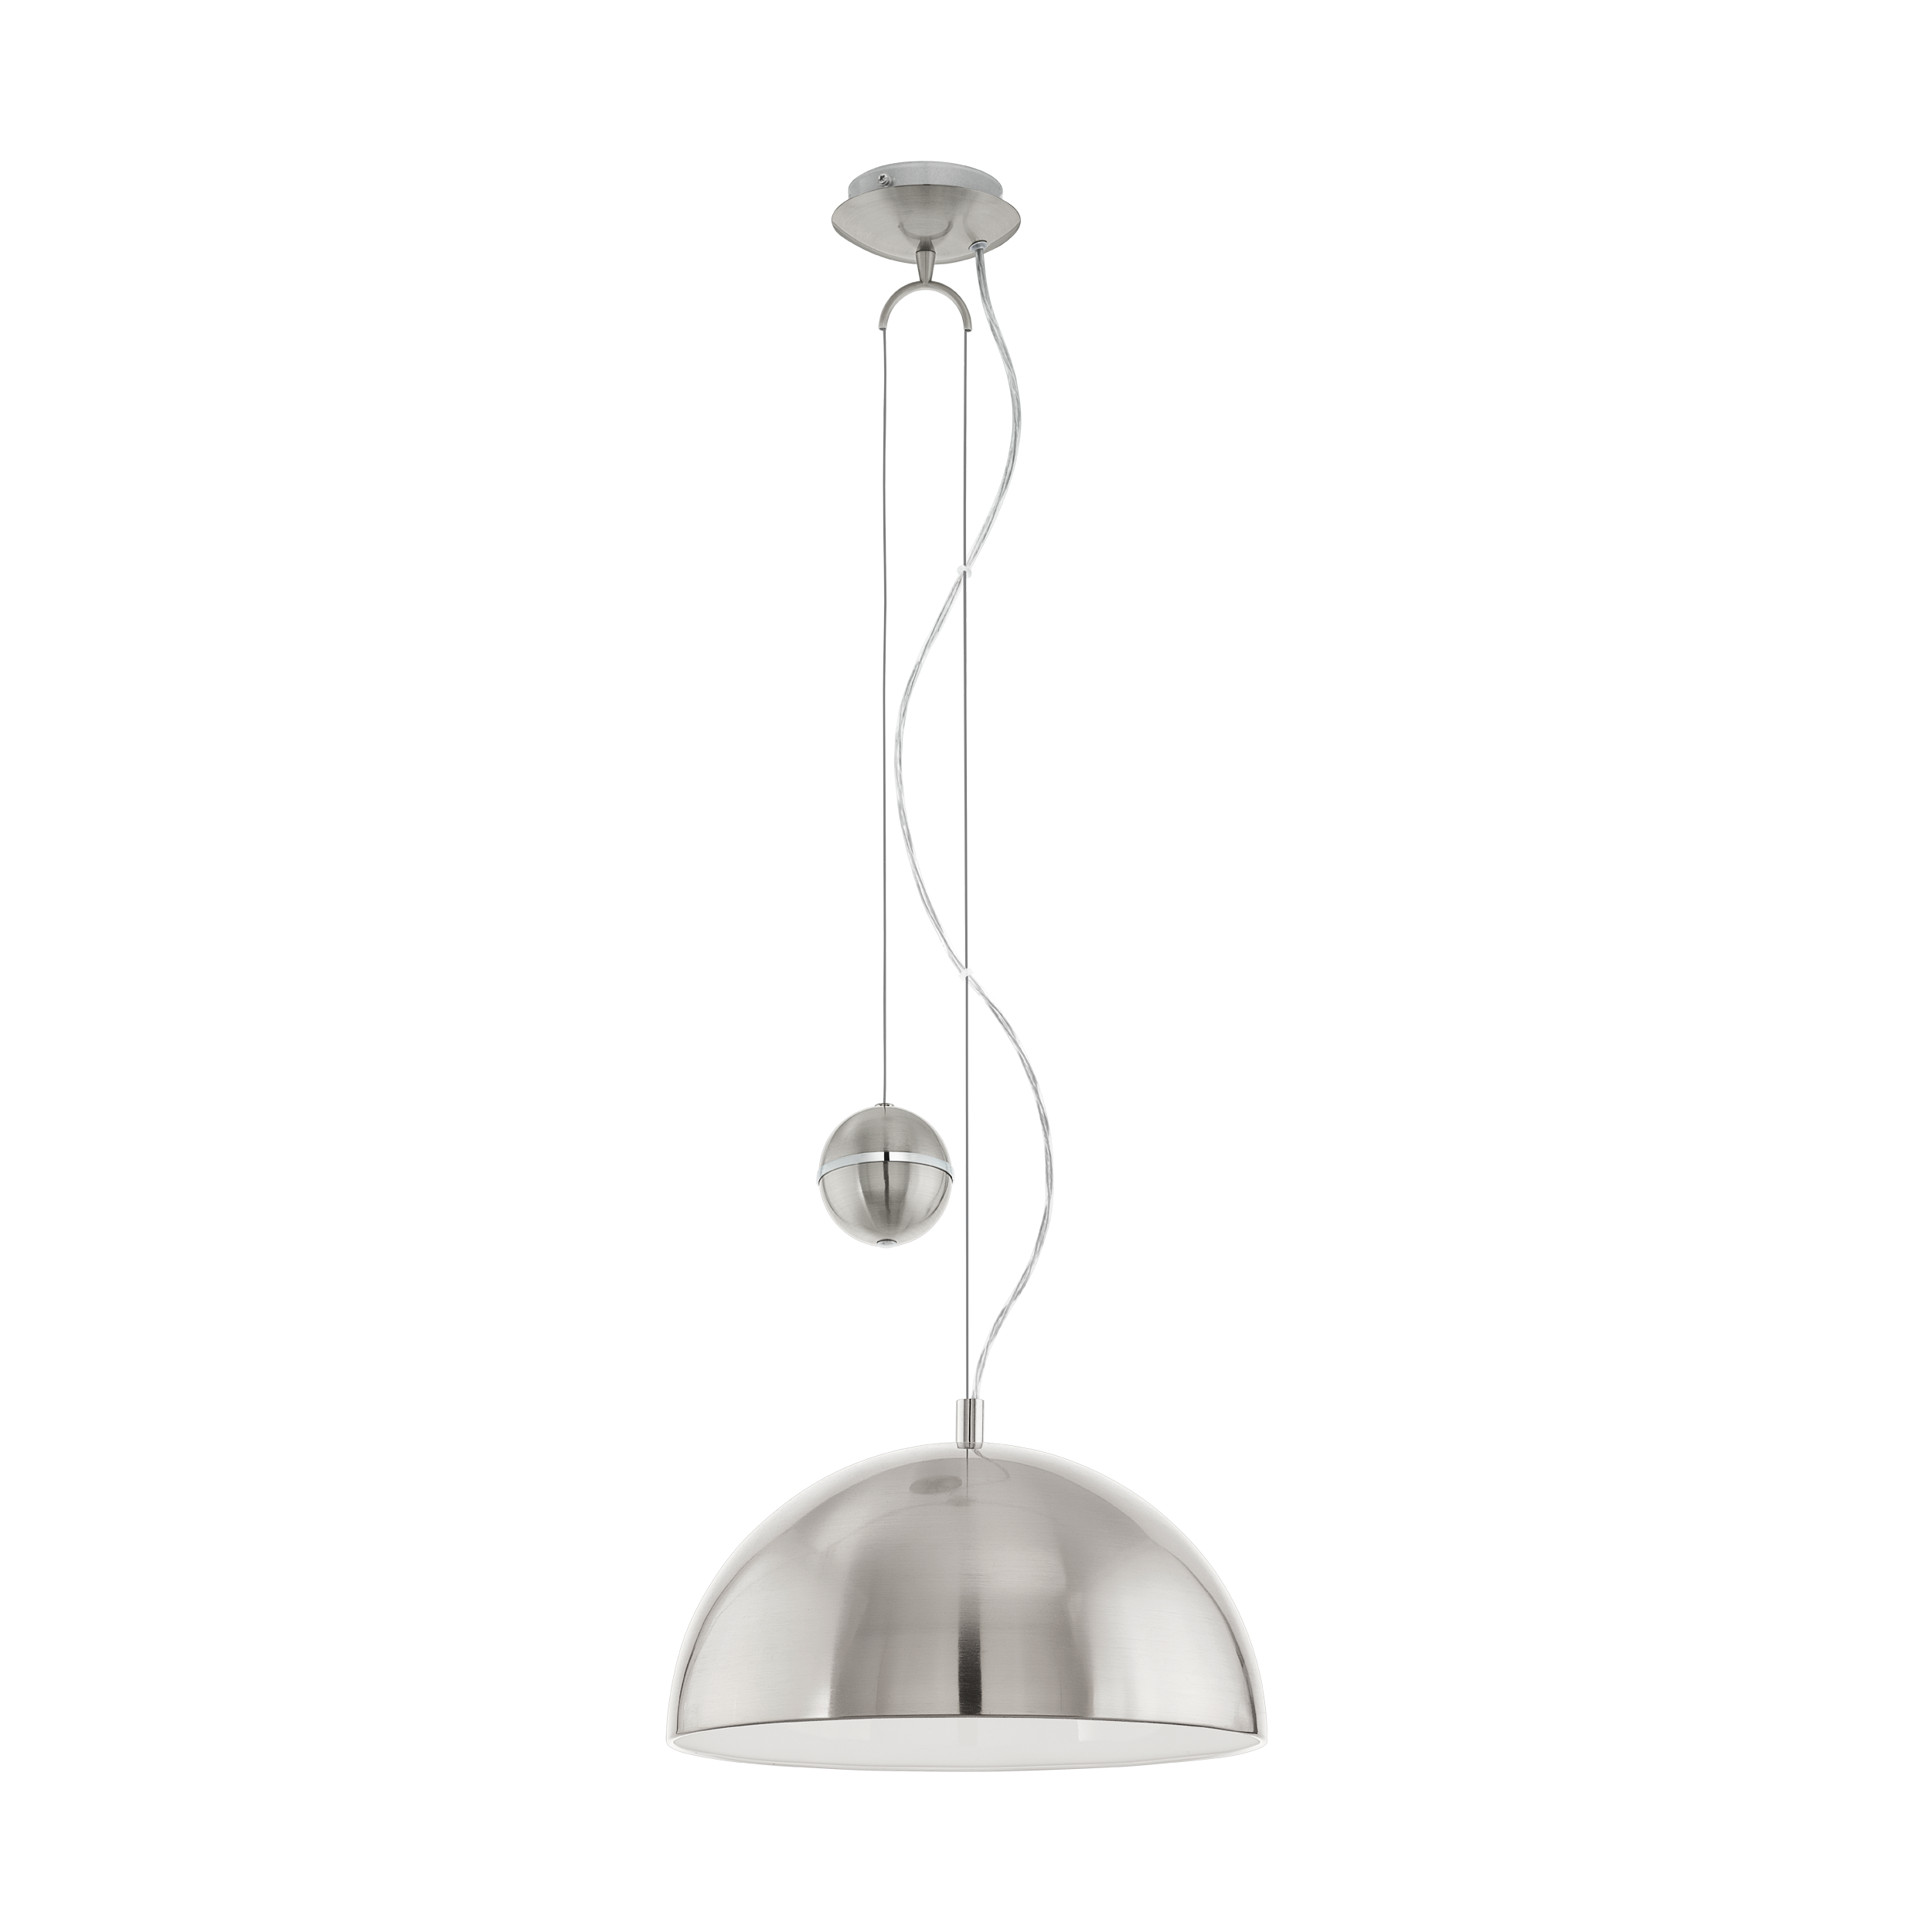 pacheco collections lighting main lights international interior products light eglo